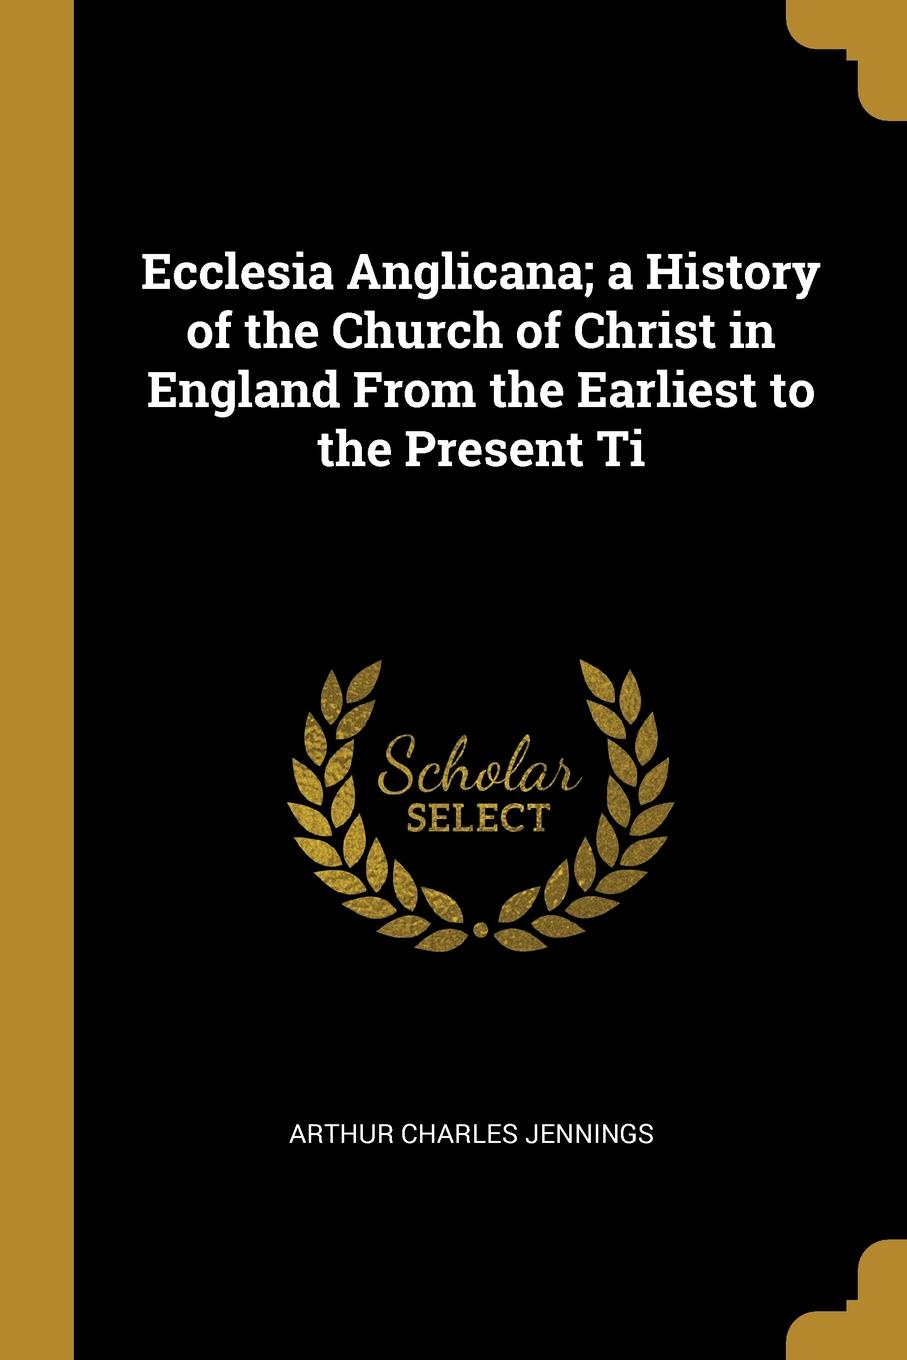 Arthur Charles Jennings Ecclesia Anglicana; a History of the Church of Christ in England From the Earliest to the Present Ti jennings arthur charles ecclesia anglicana a history of the church of christ in england